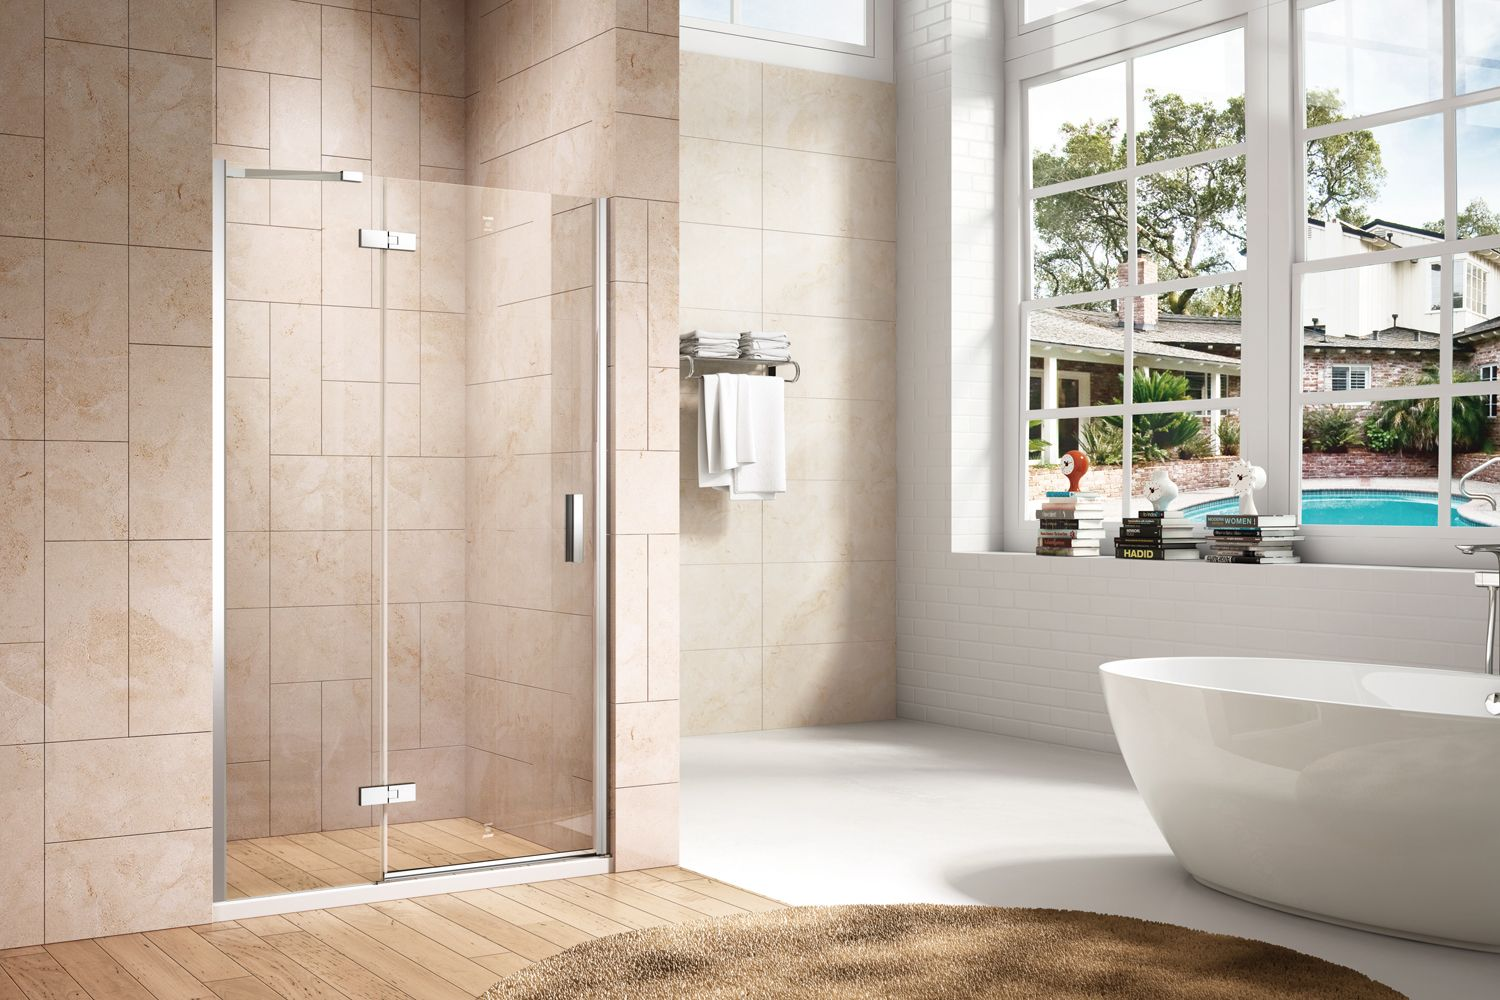 Access Our Best Collection Of Shower Enclosures Stalls Glass Shower Doors Cubicle And Much More Get Shower Cubicles Shower Enclosure Neo Angle Shower Doors